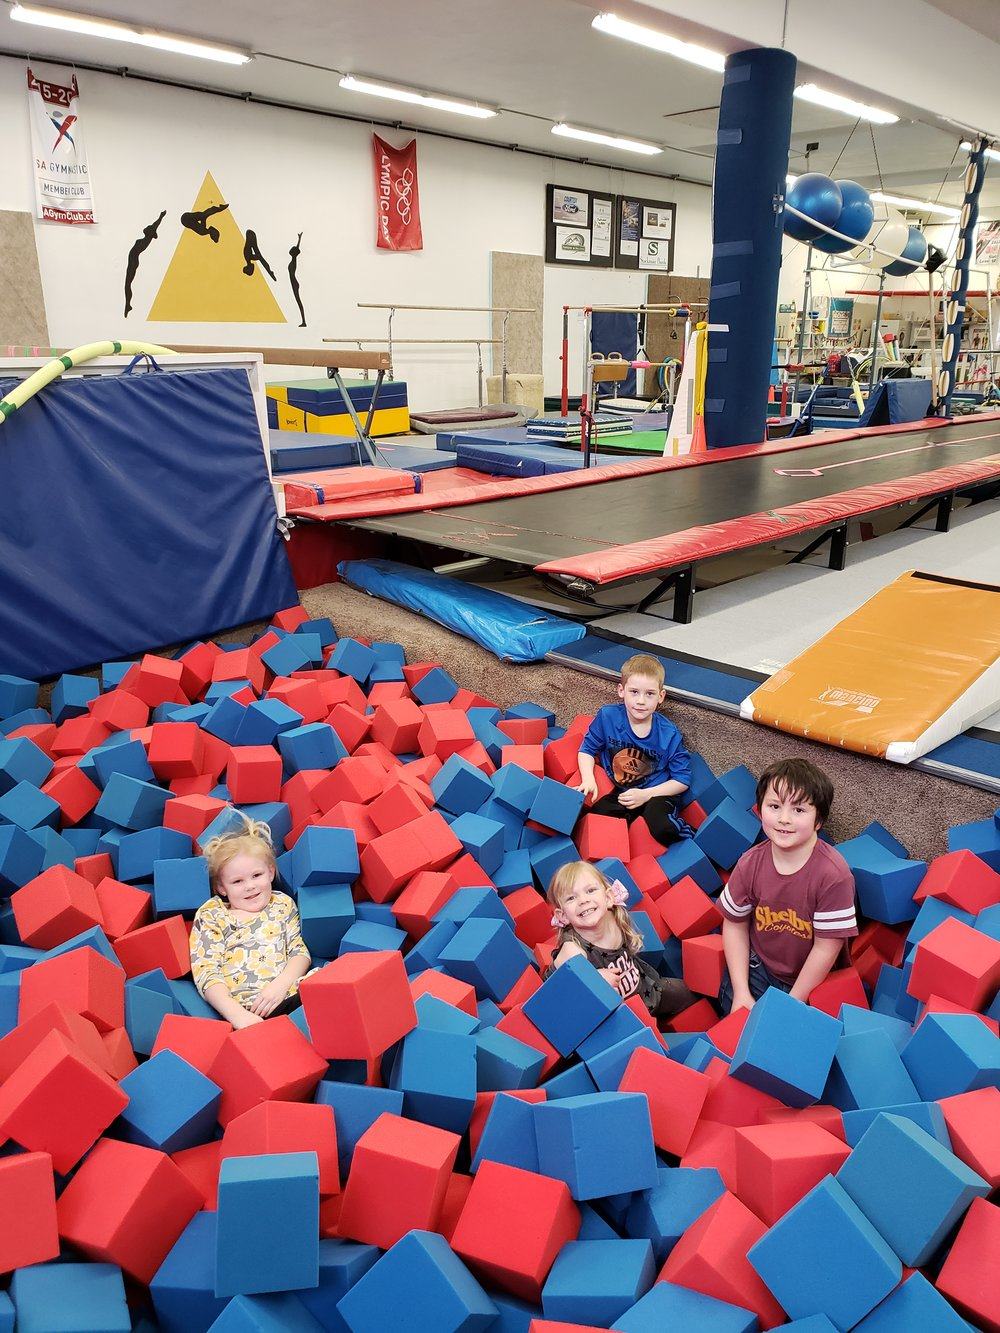 30 & 40' Tumble Tracks - Conrad location sports a 15'x15' in ground, loose foam pit & 12'x 12' climbing net.